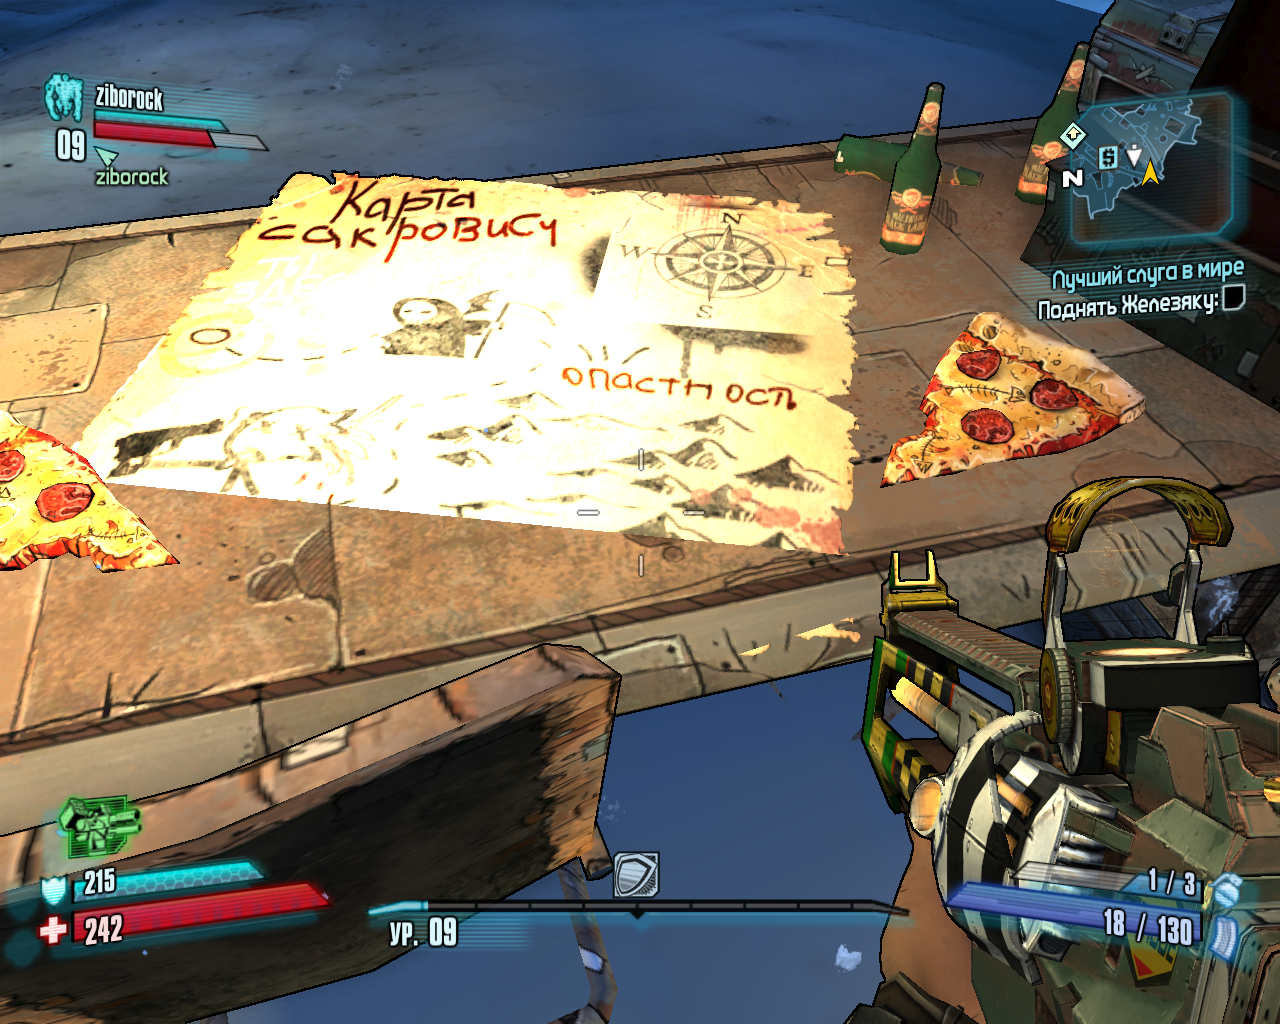 Borderlands2 2014-11-30 20-57-32-01.png - Borderlands 2